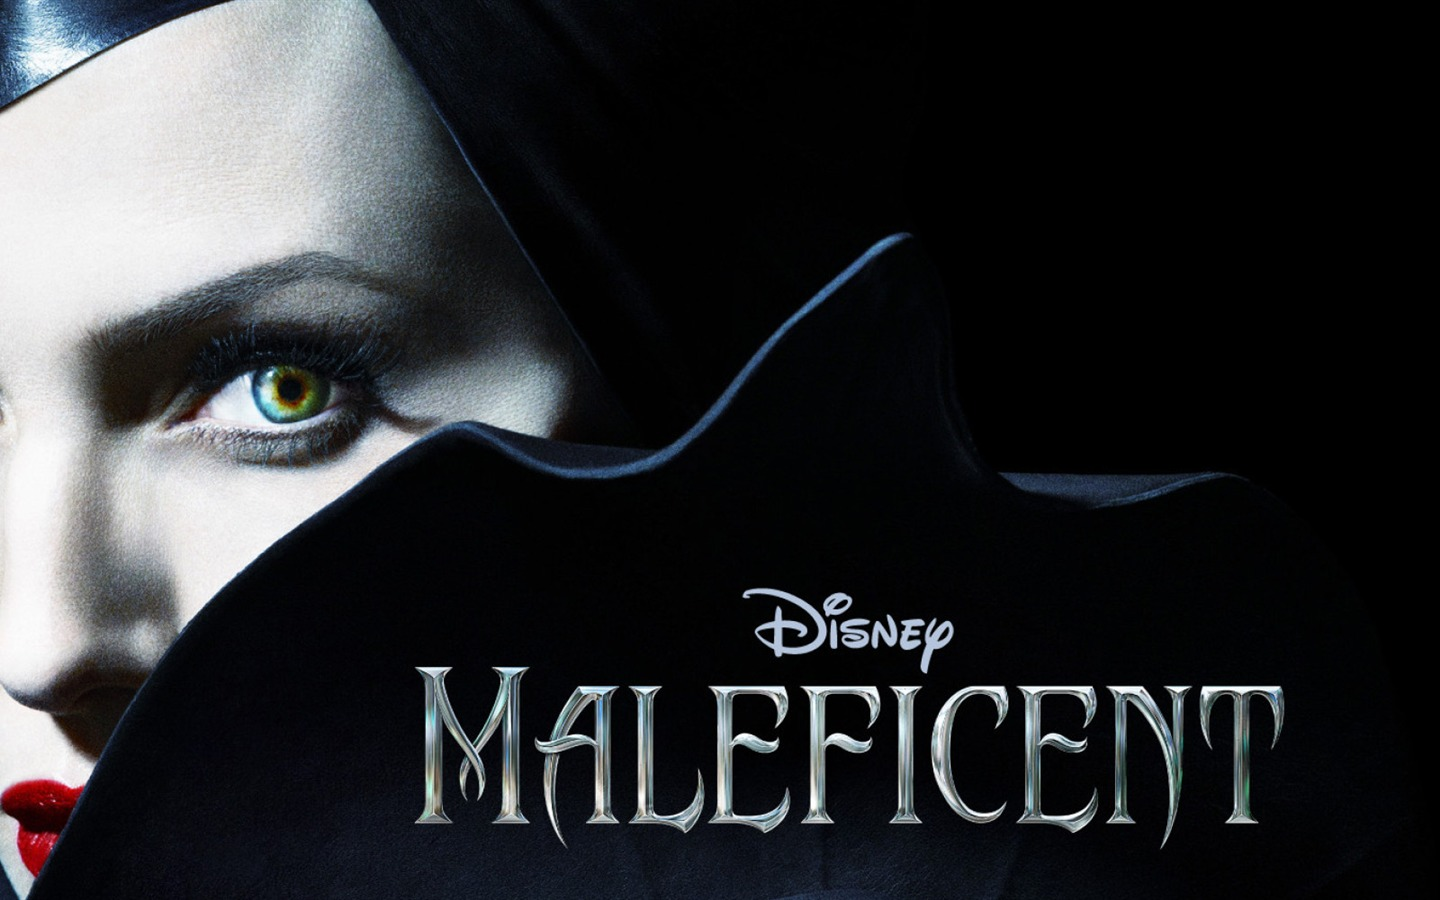 Maleficent Movie 2014 Hd Ipad Iphone Wallpapers: Maleficent 2014 Movie HD Desktop Wallpaper 01 Preview